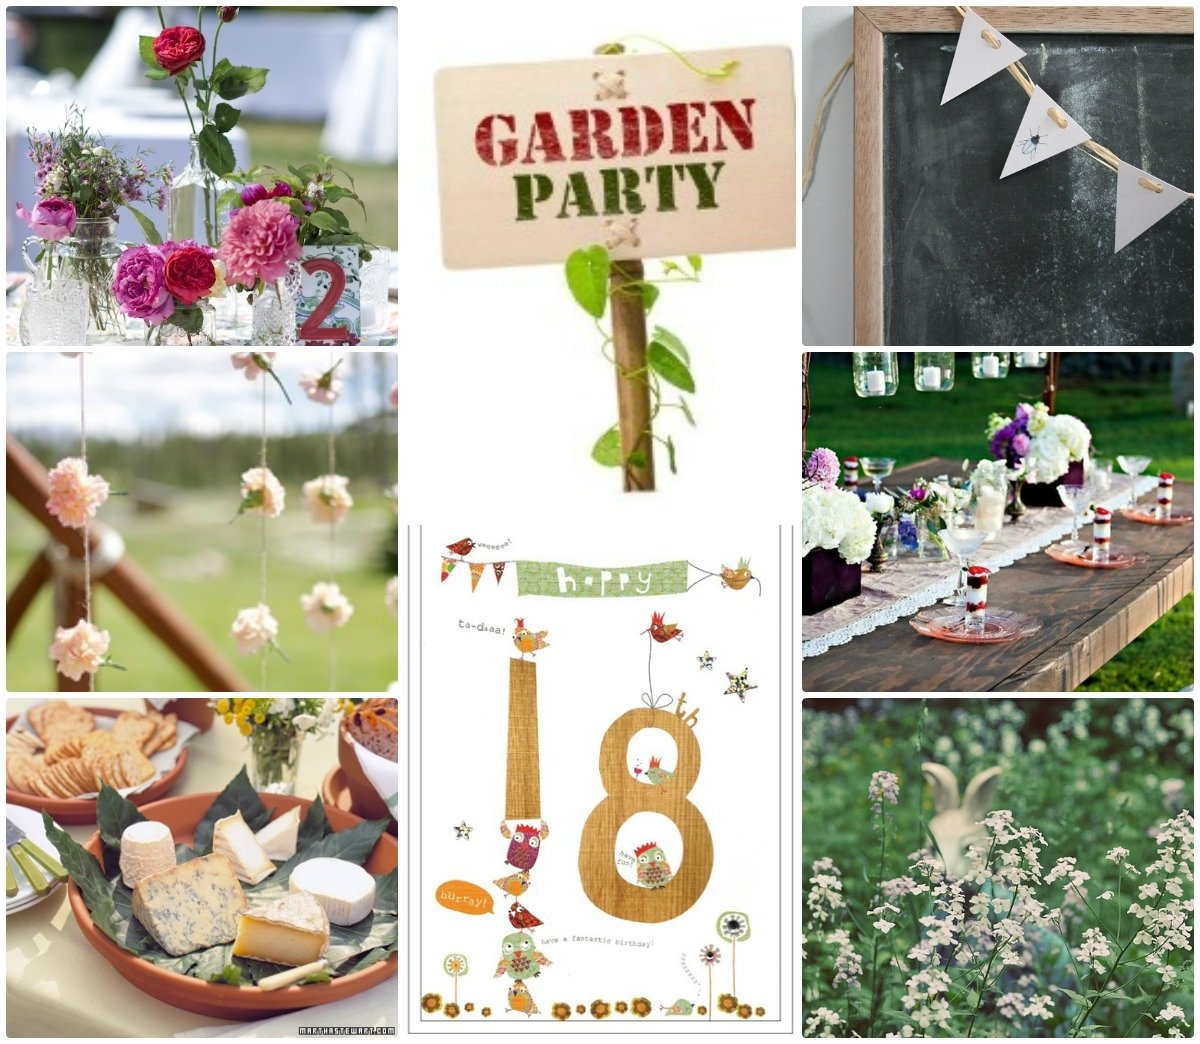 10 Unique Ideas For 18Th Birthday Party At Home fantastic 18th birthday party ideas village garden theme party 2020